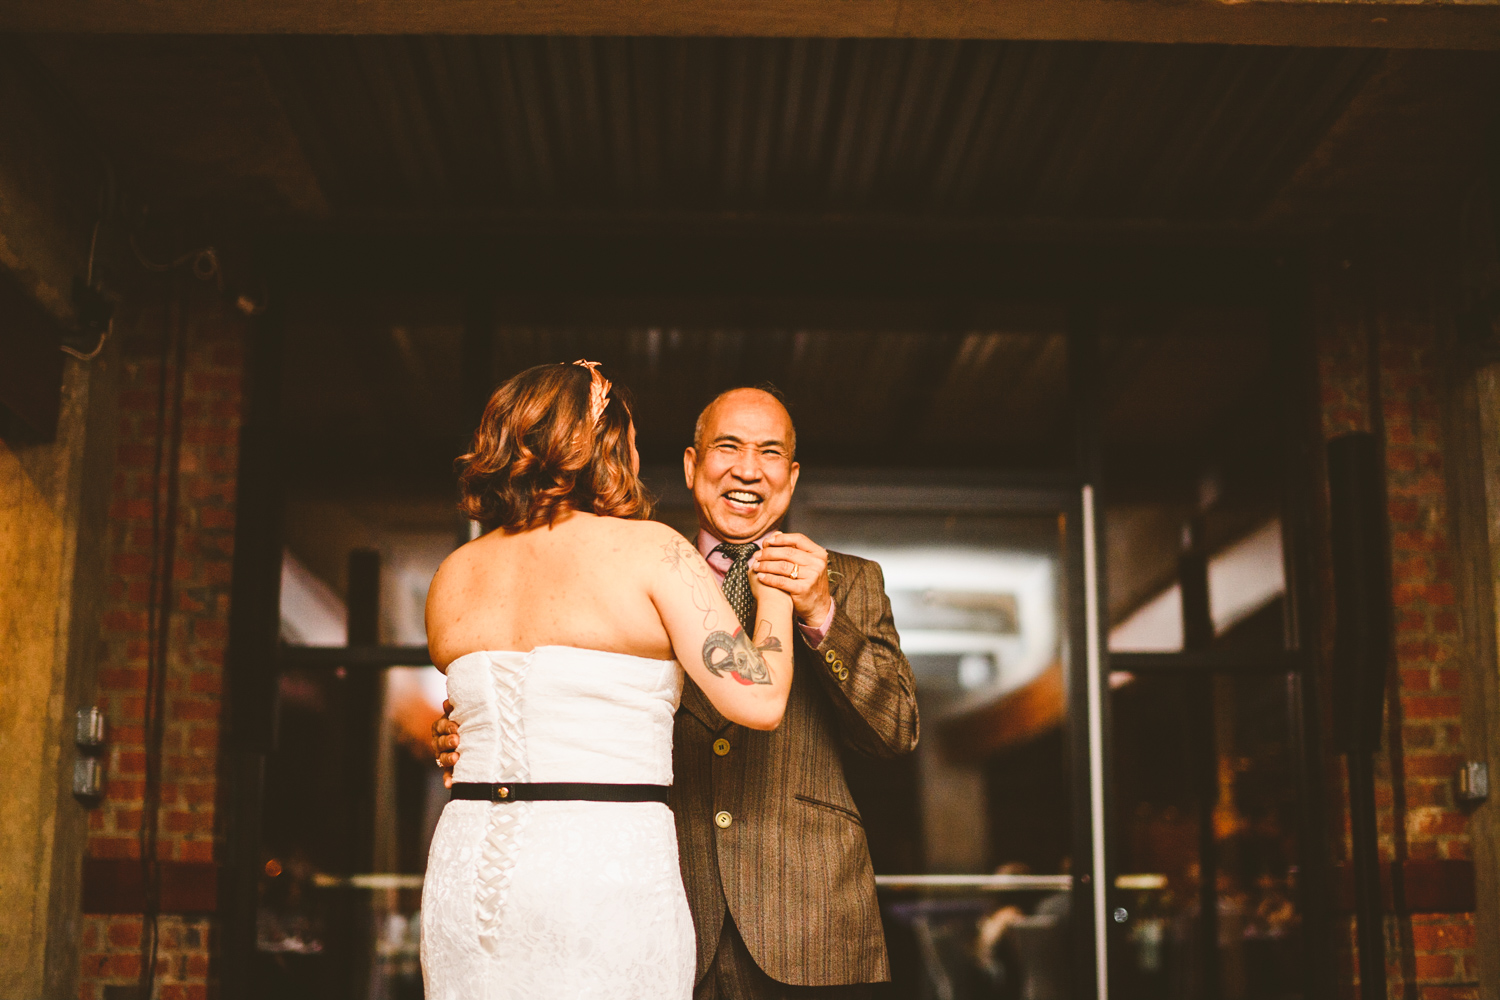 032 - bride's dad laughs during the father daughter dance.jpg